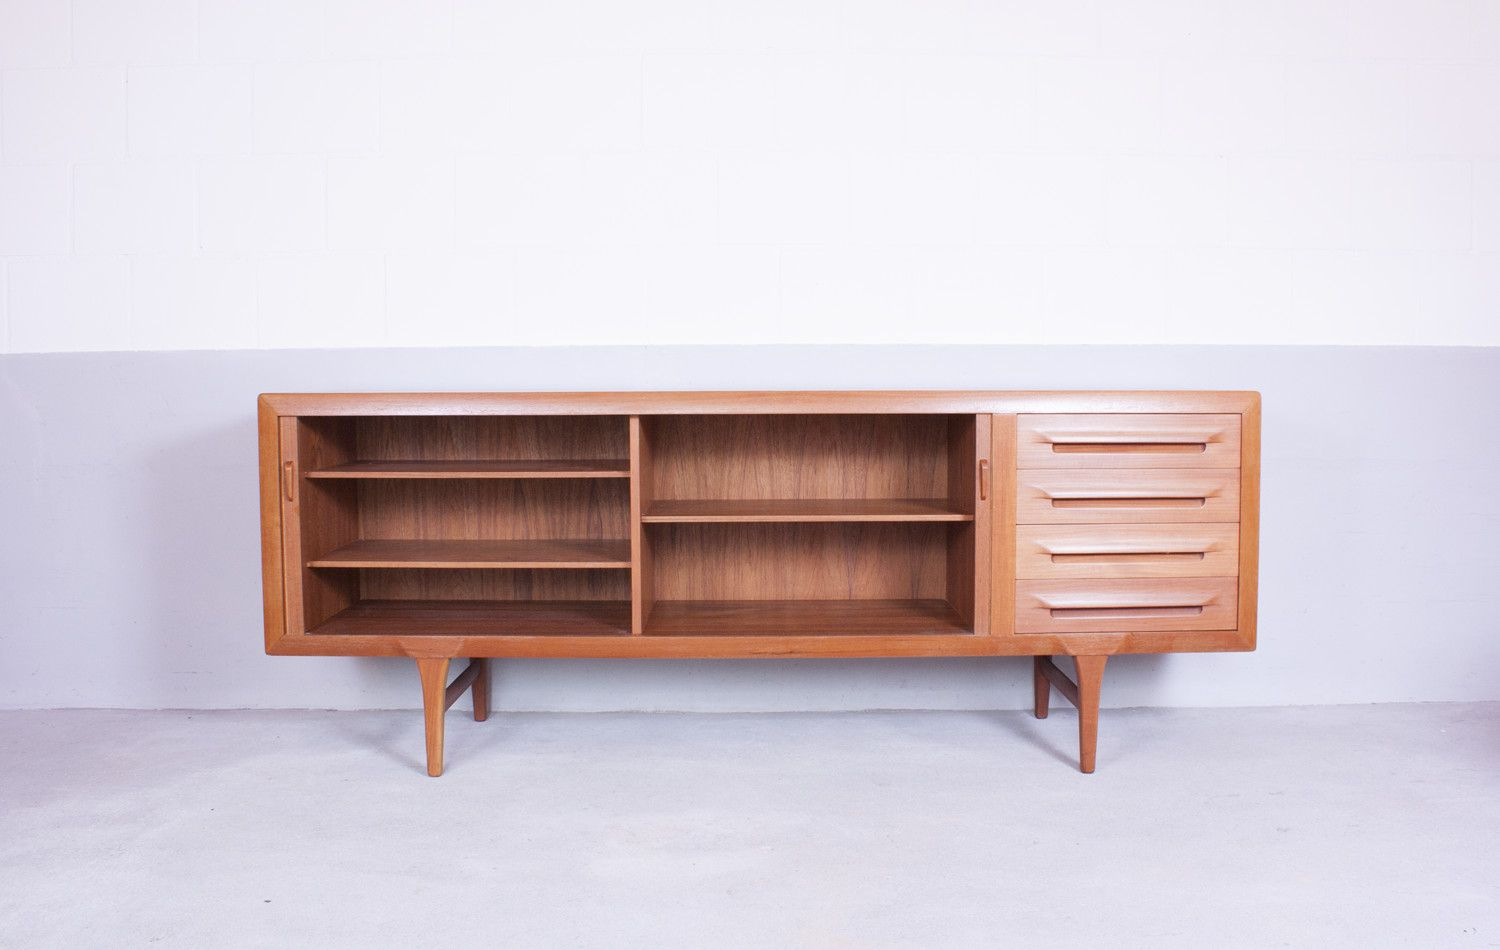 Vintage teak sideboard by ib kofod larsen for faarup for for Sideboard x7